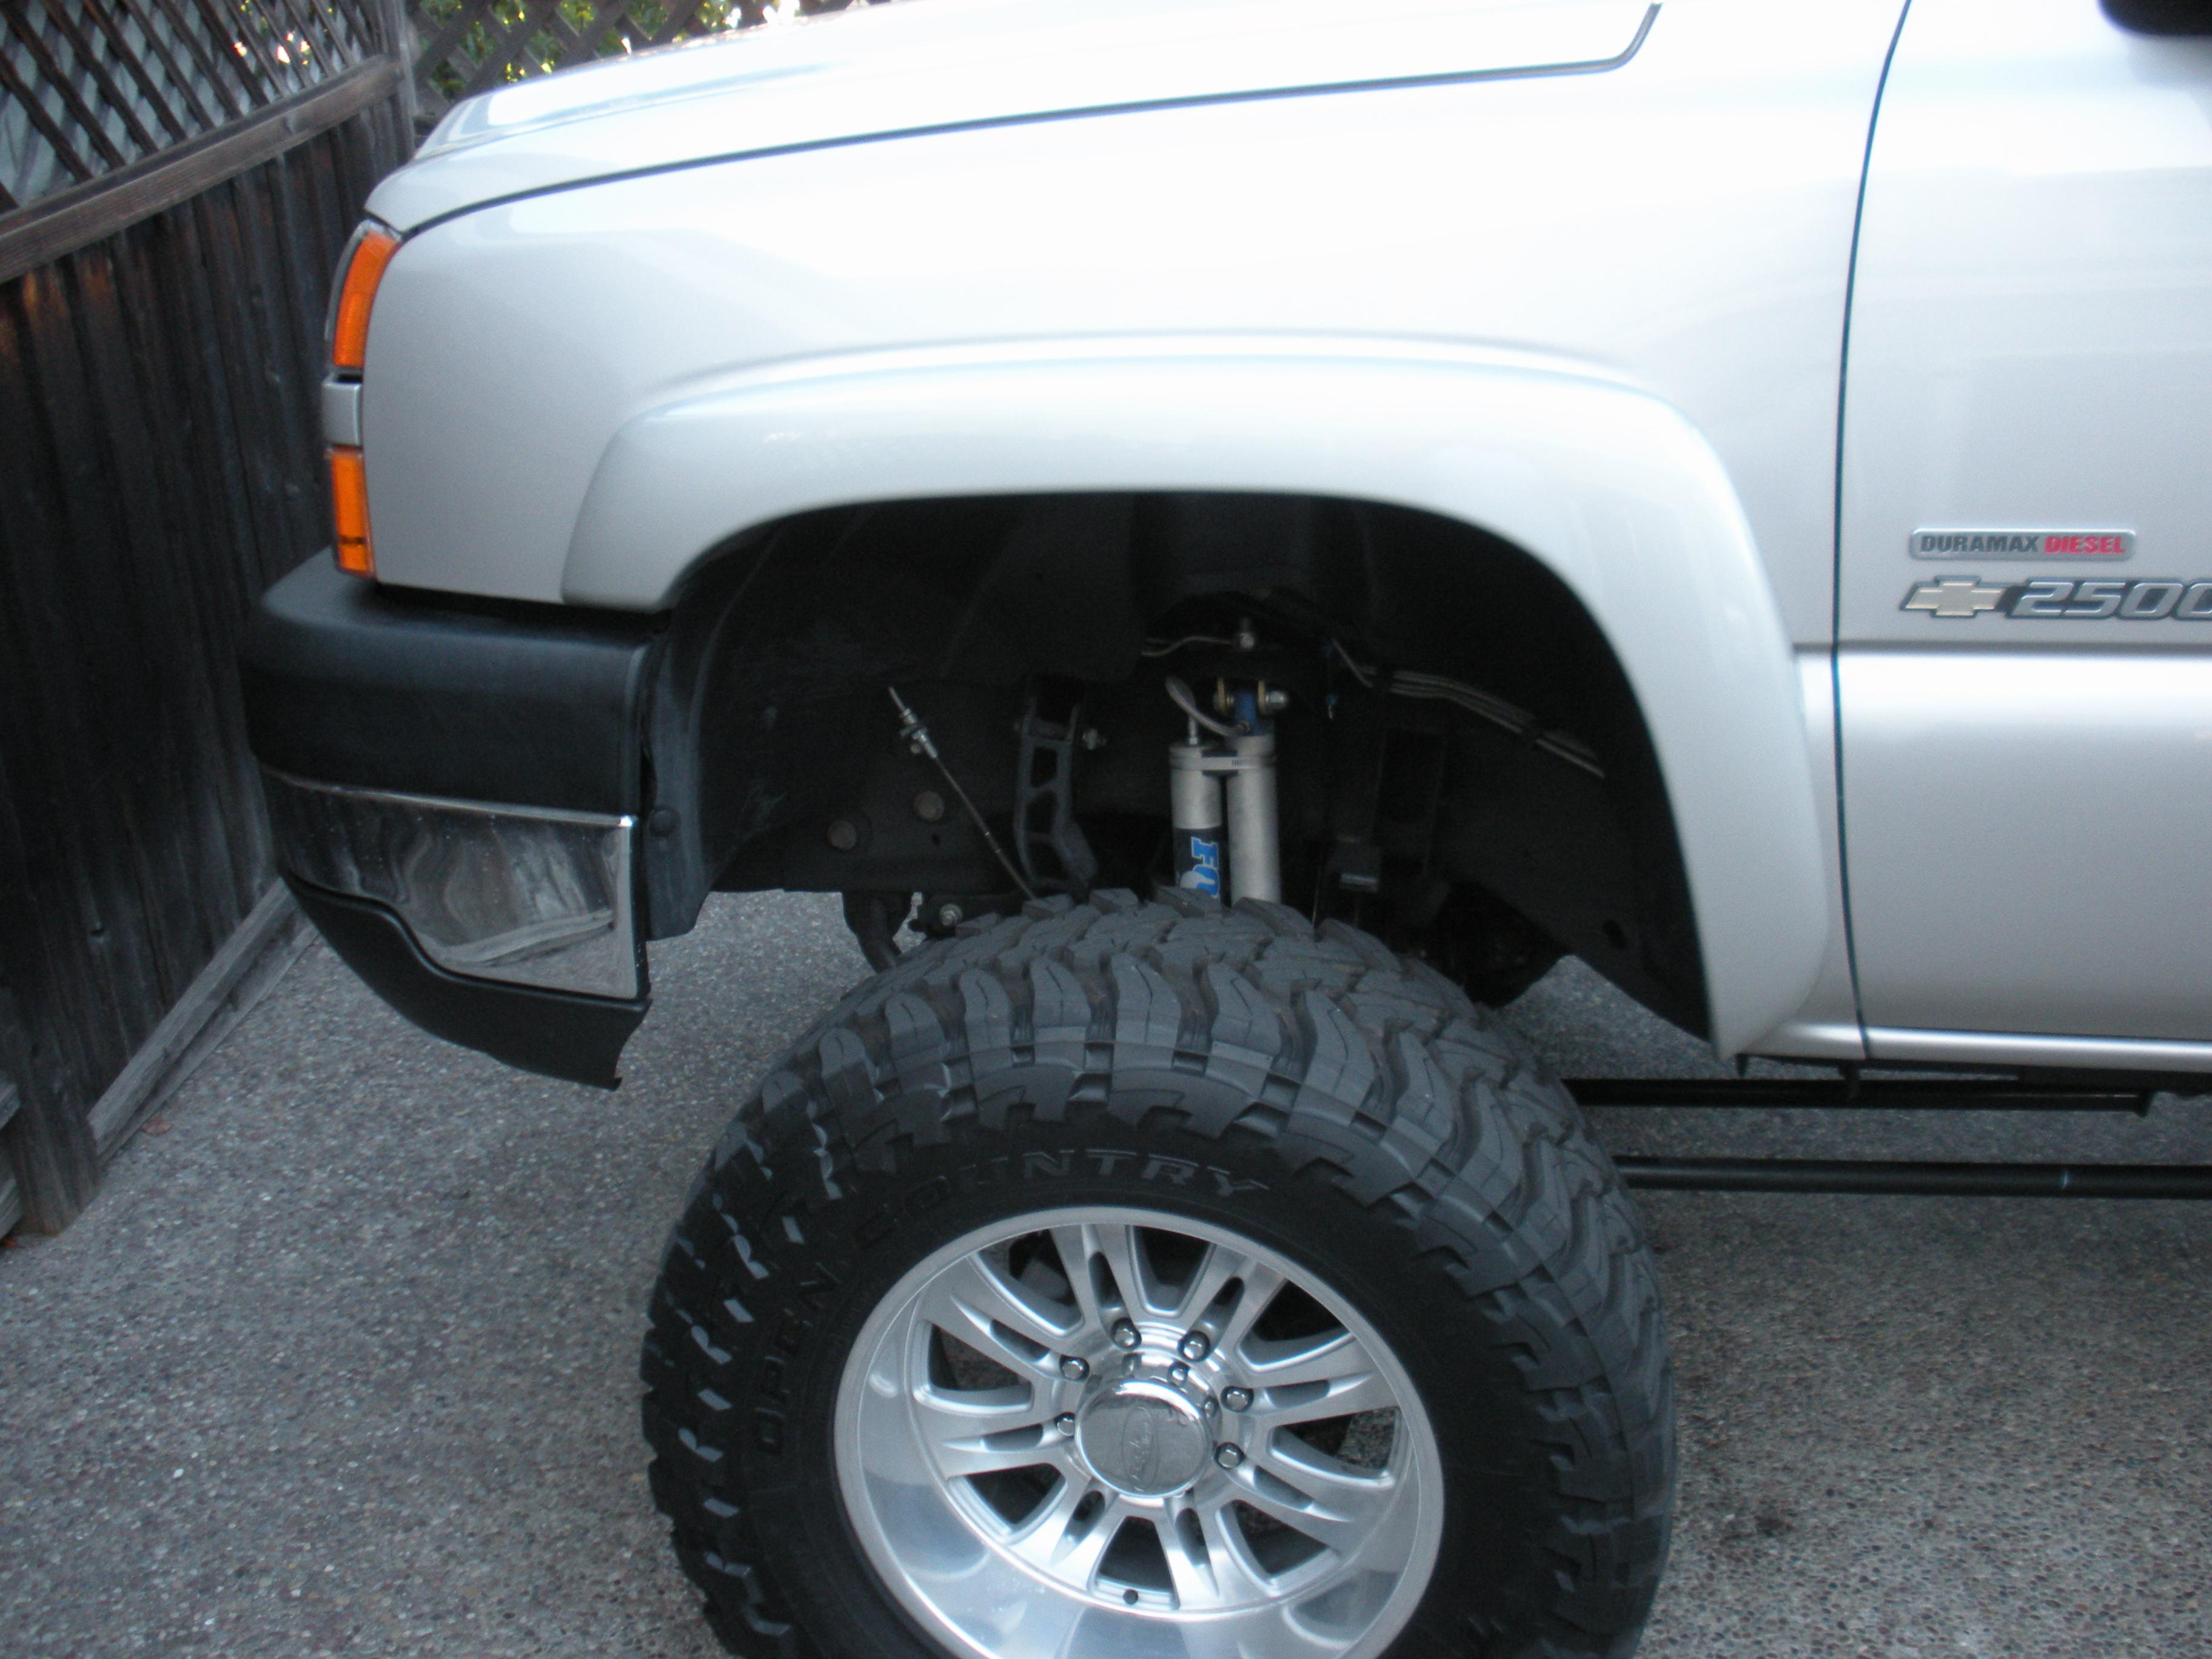 Another DIRTY*M@X 2006 Chevrolet Silverado 2500 HD Crew Cab post... - 13866019